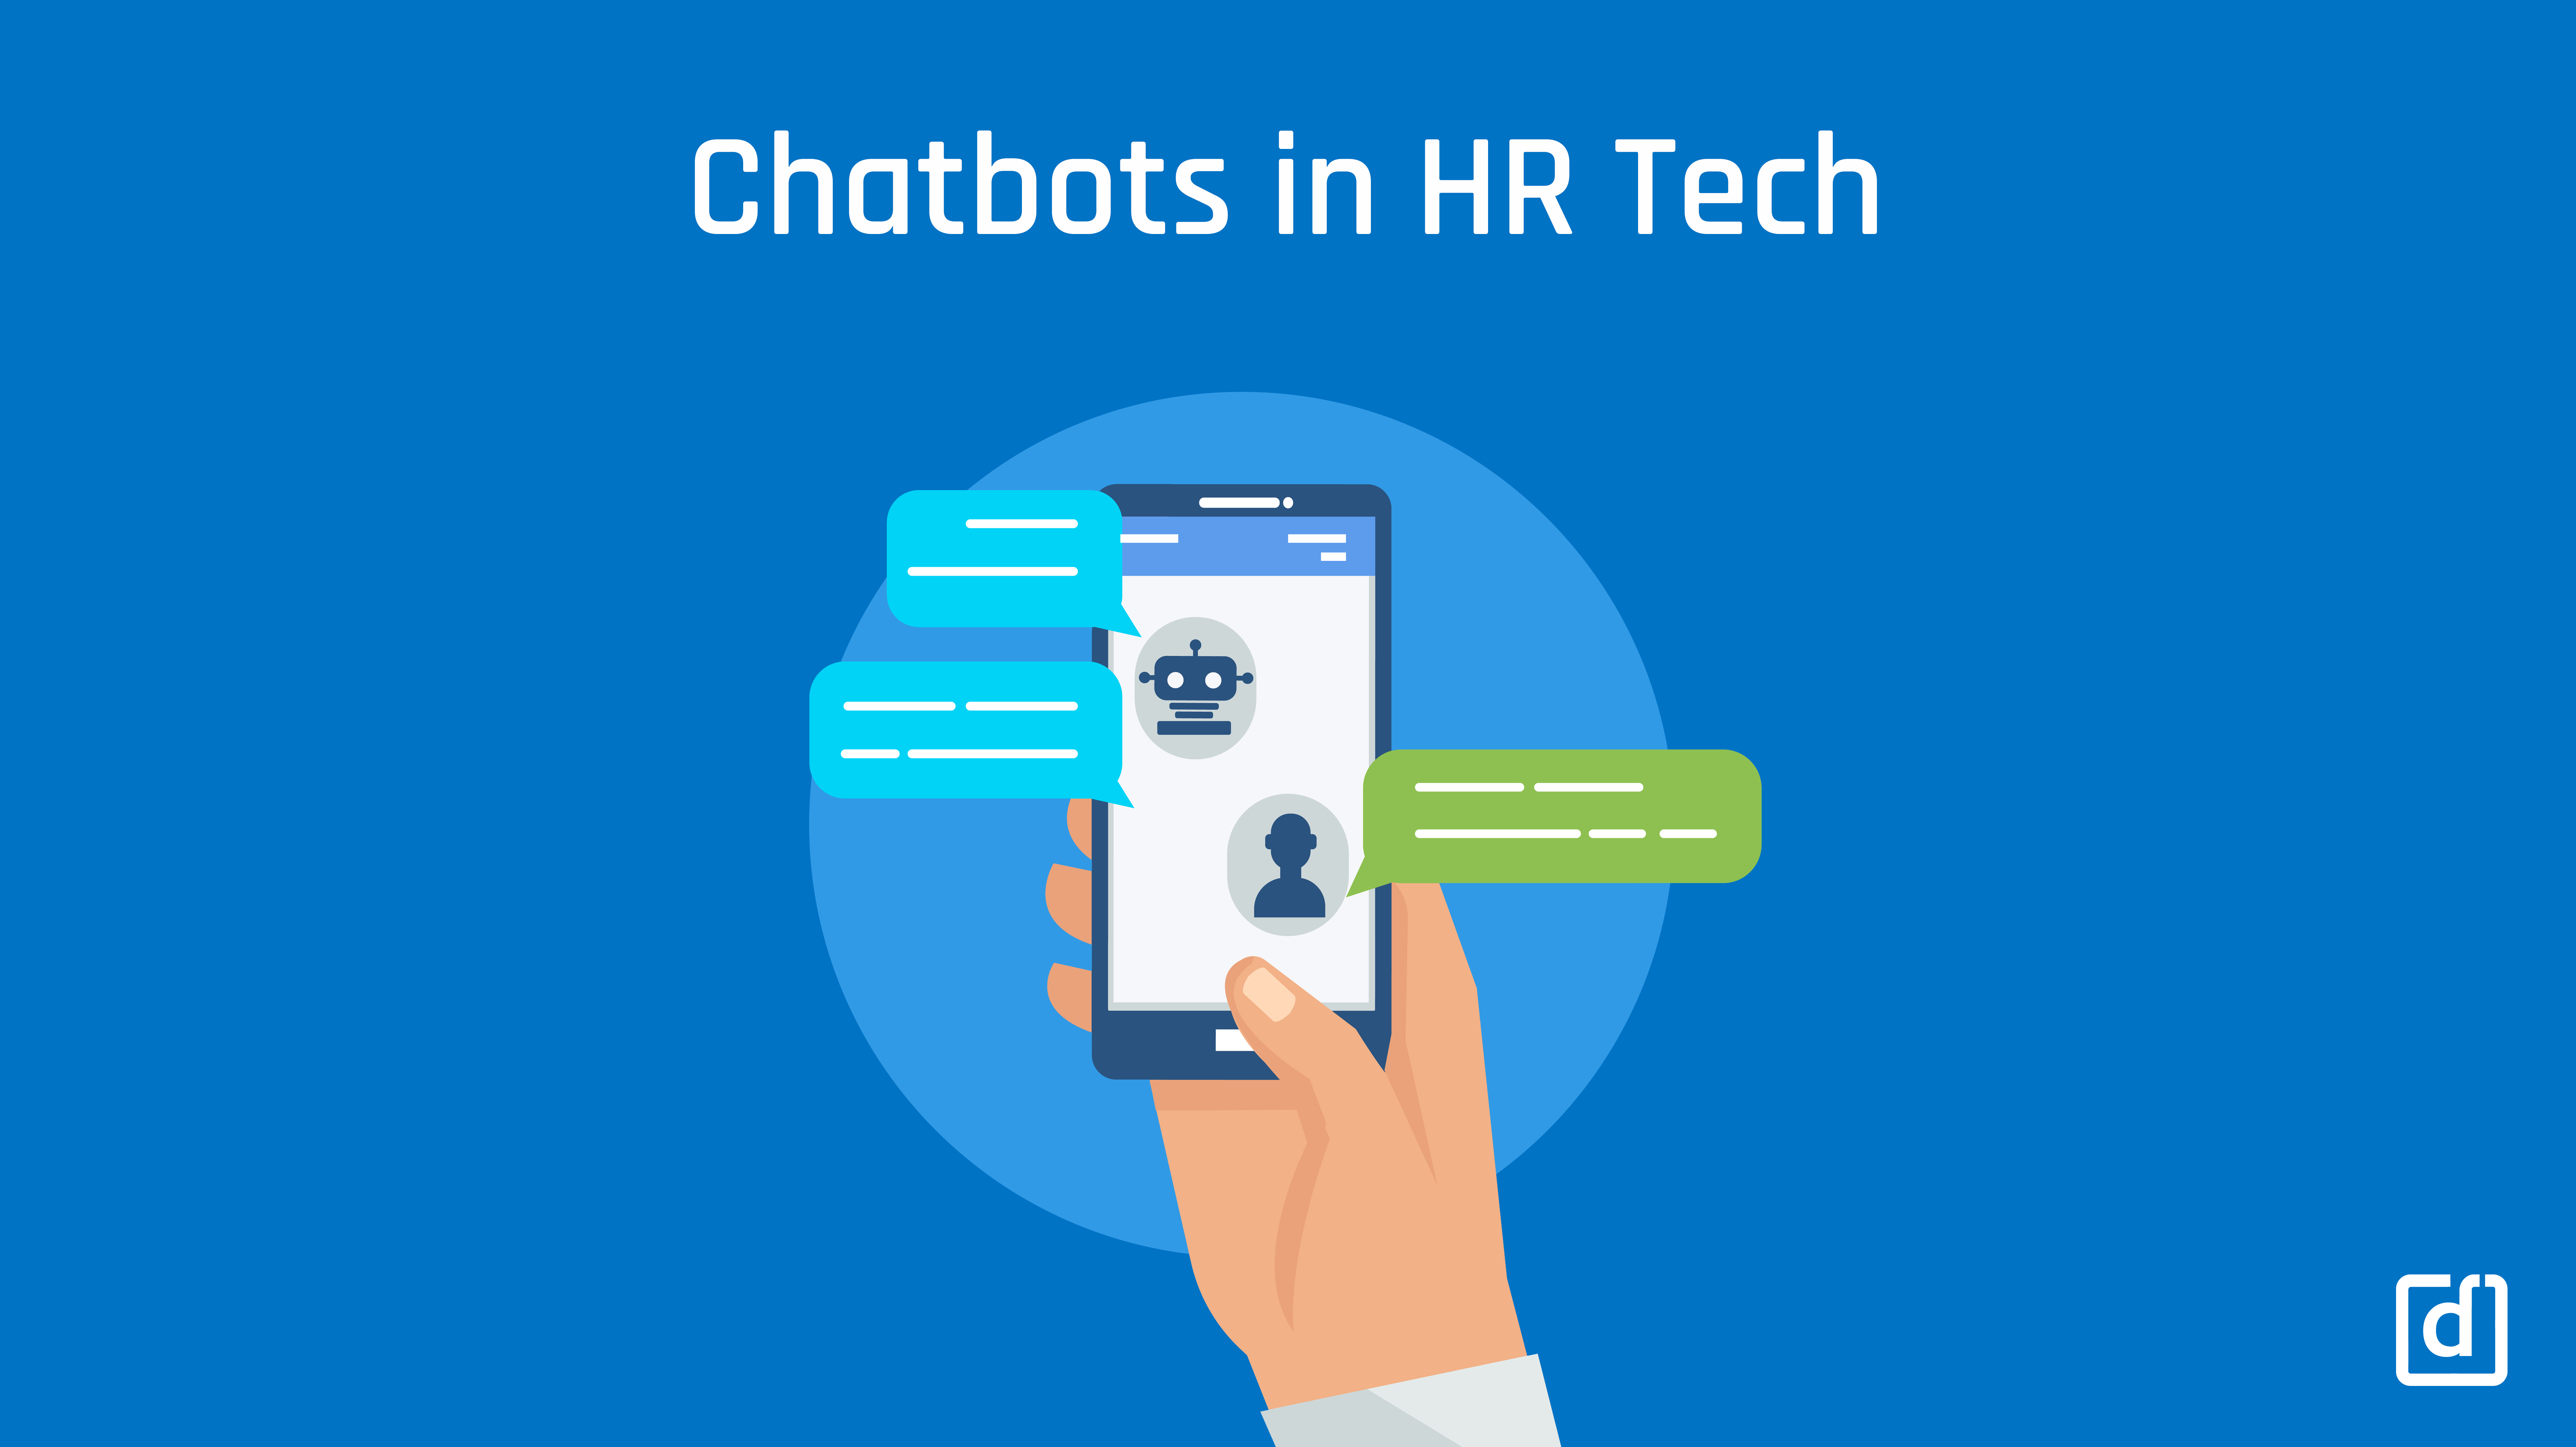 Chatbots In HR Tech